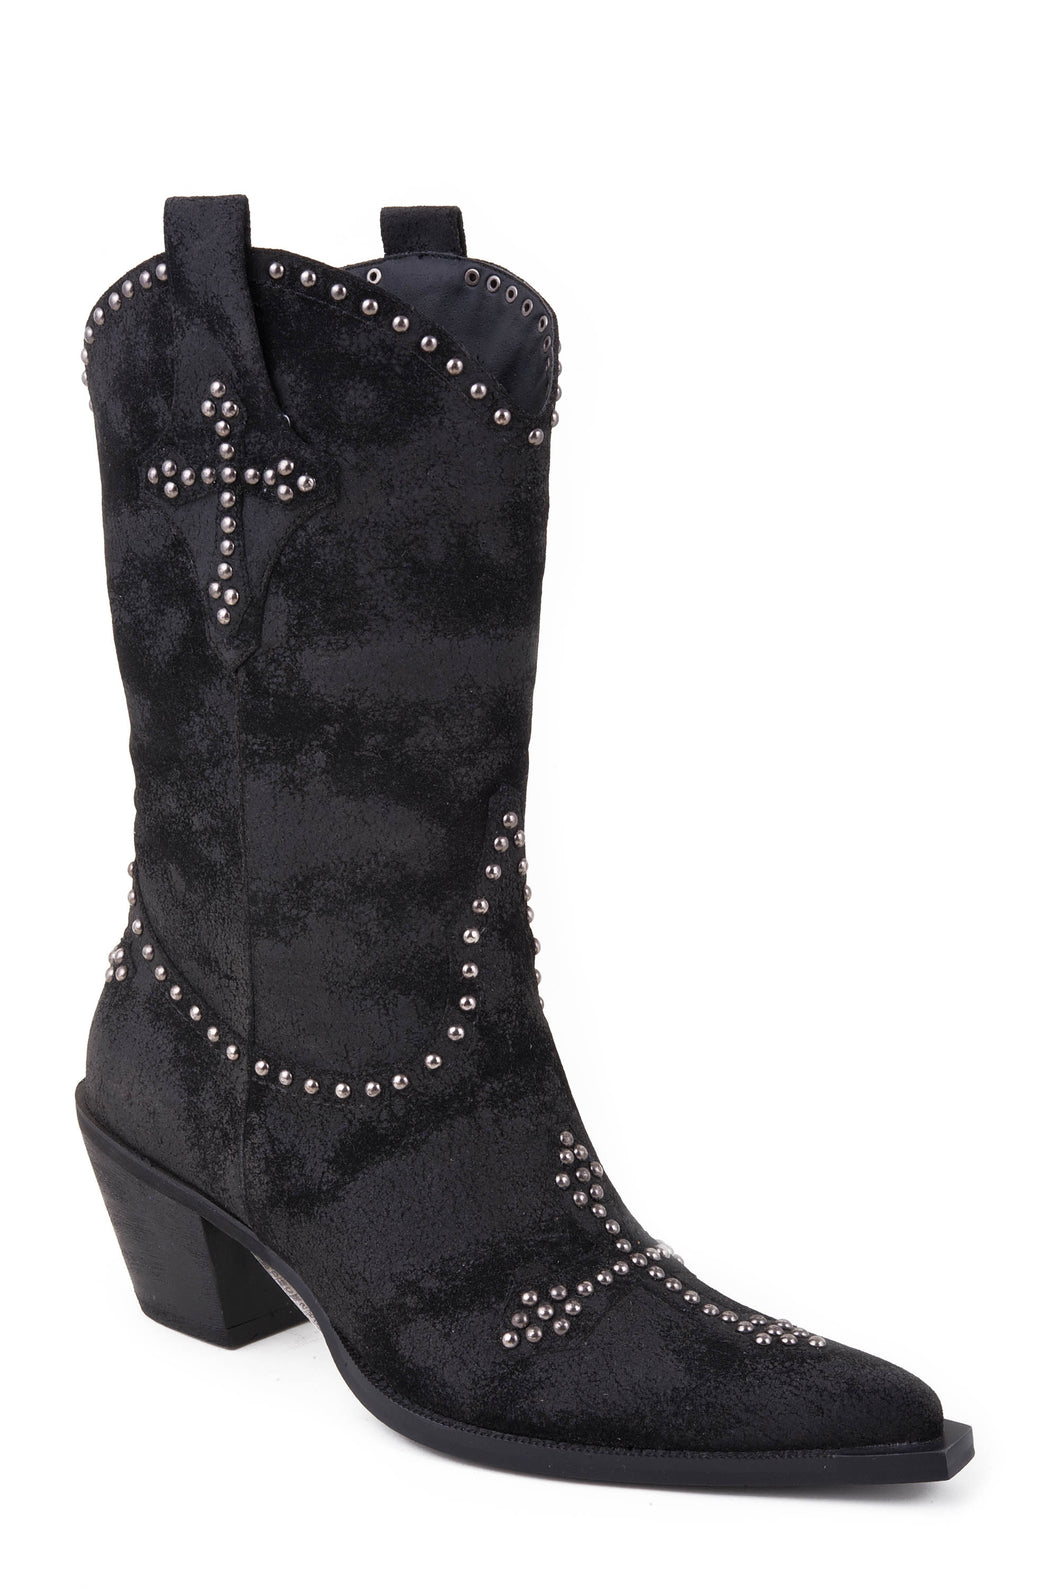 Ladies Fashion Boot Boot Womens Boot Black Faux Suede W Stud Cross Design